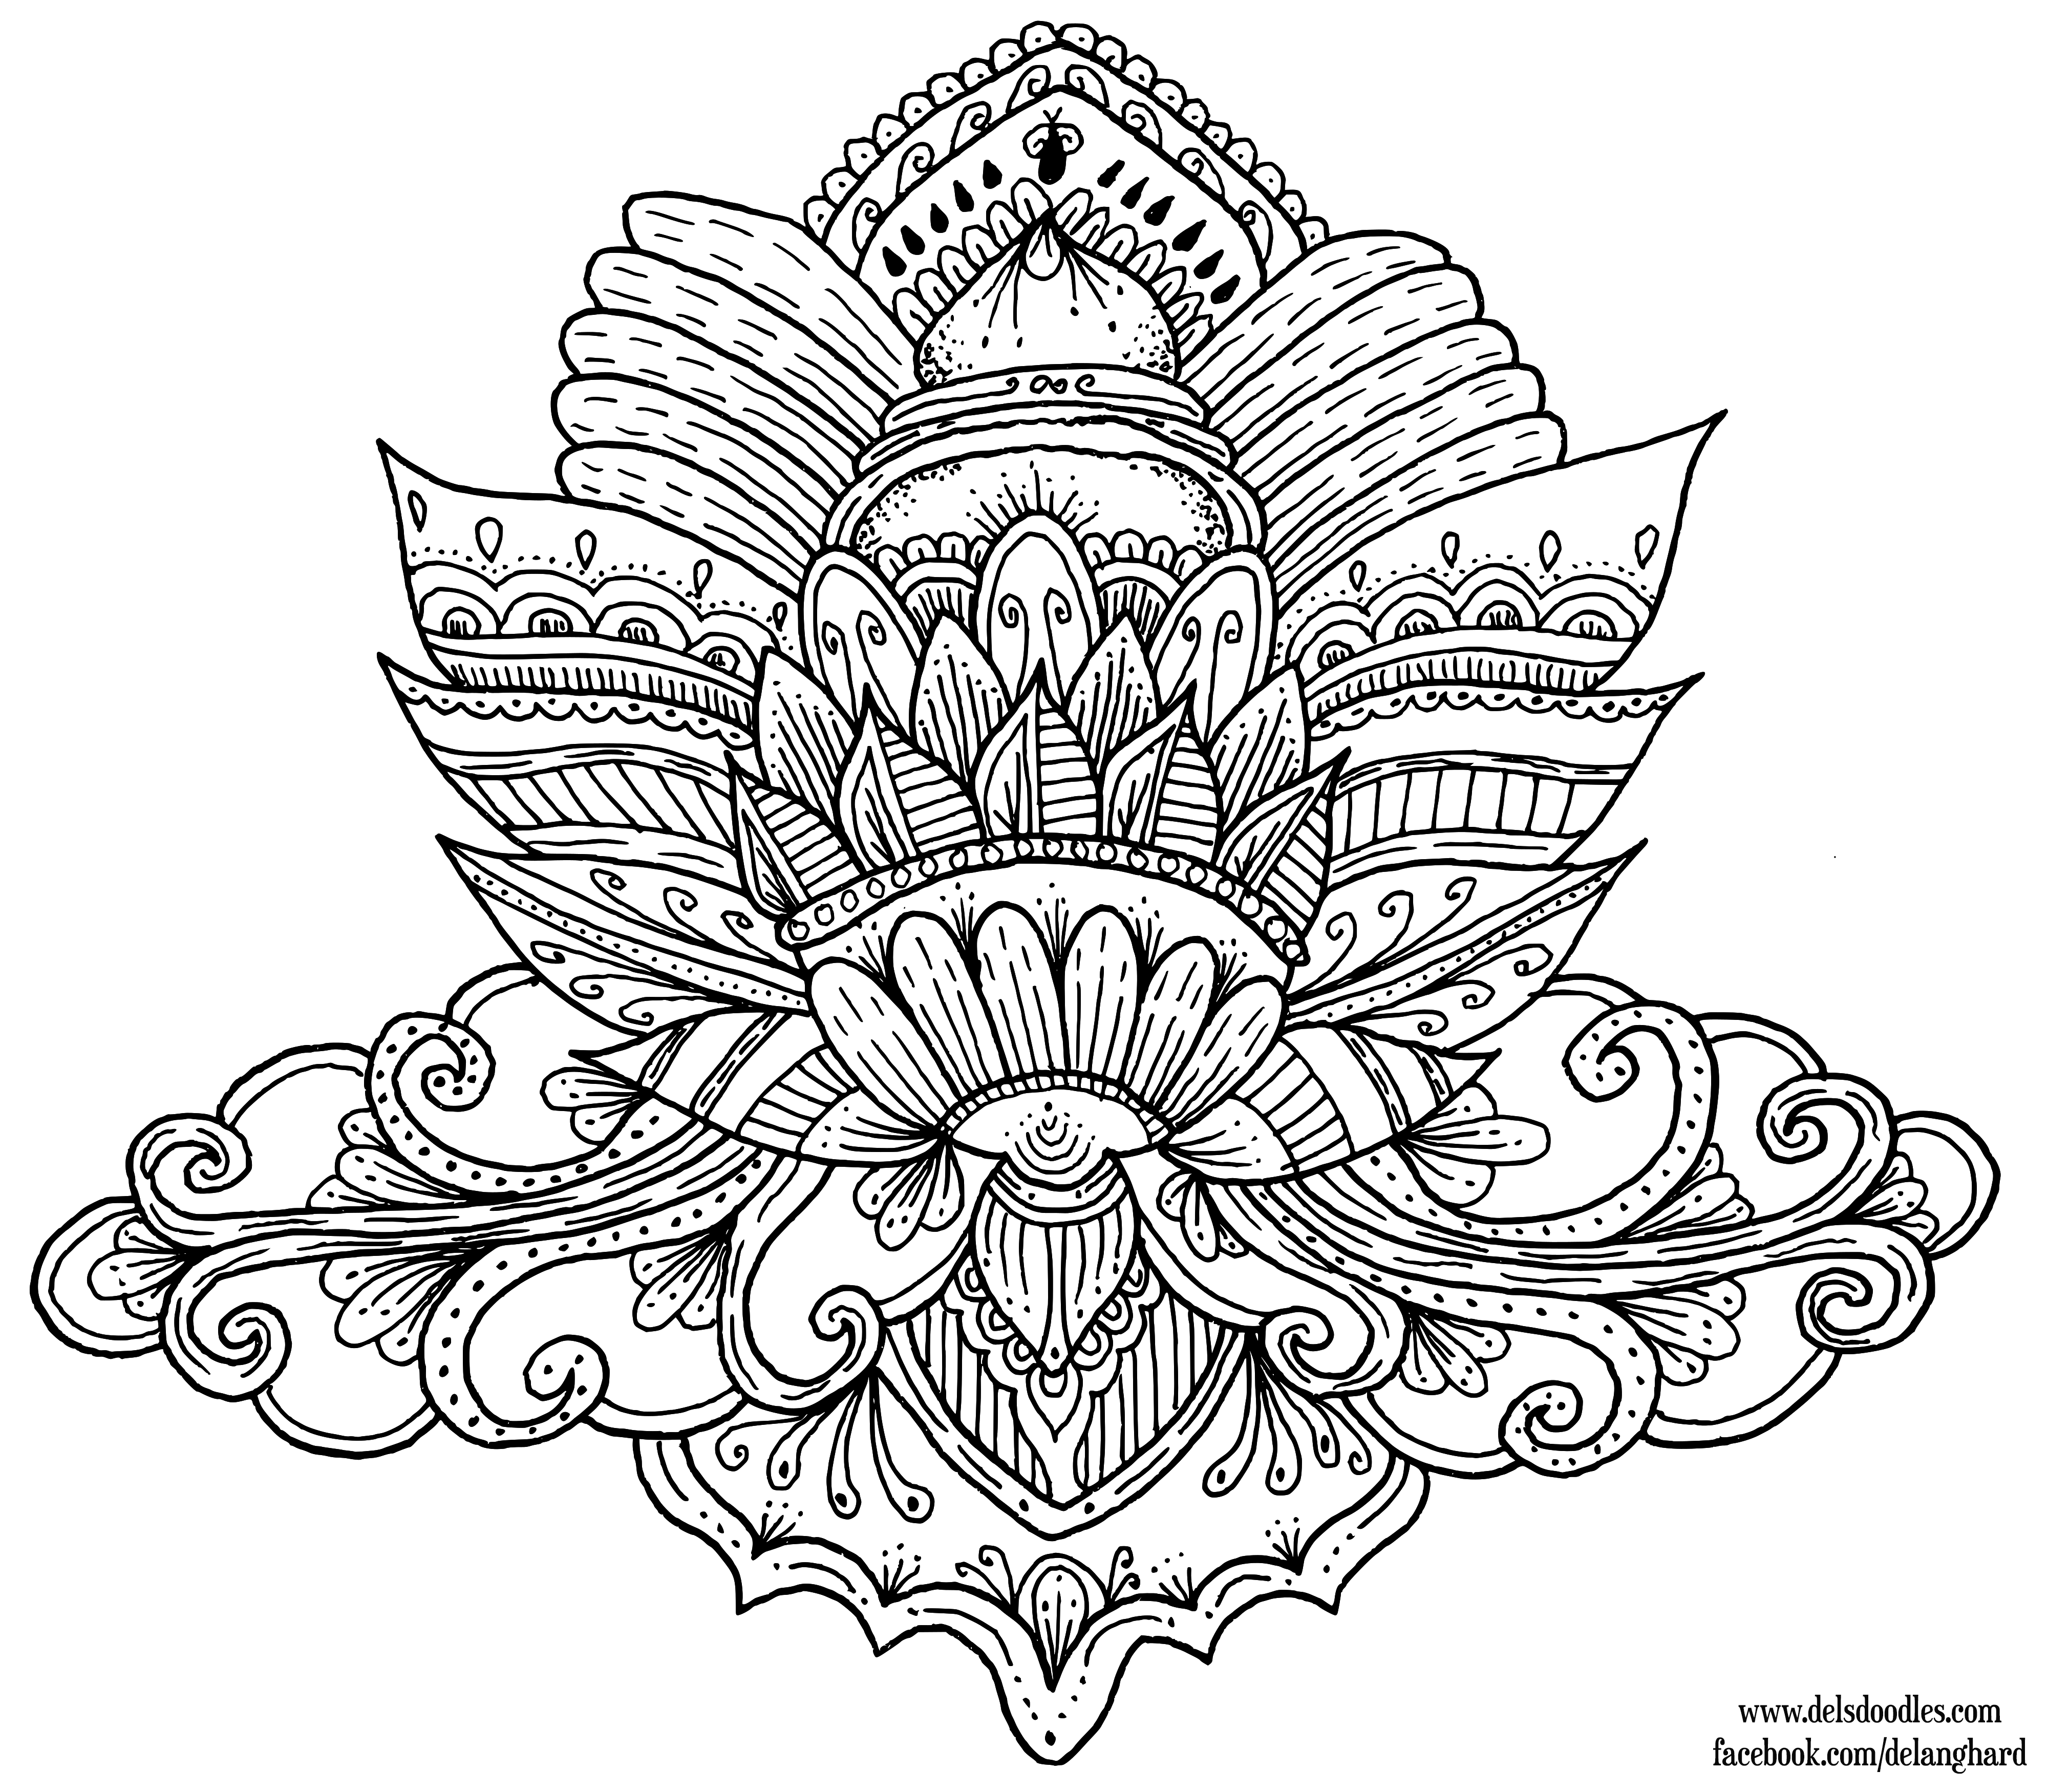 lotus flower coloring page learn to draw a realistic rose flowers roses plants coloring lotus flower page